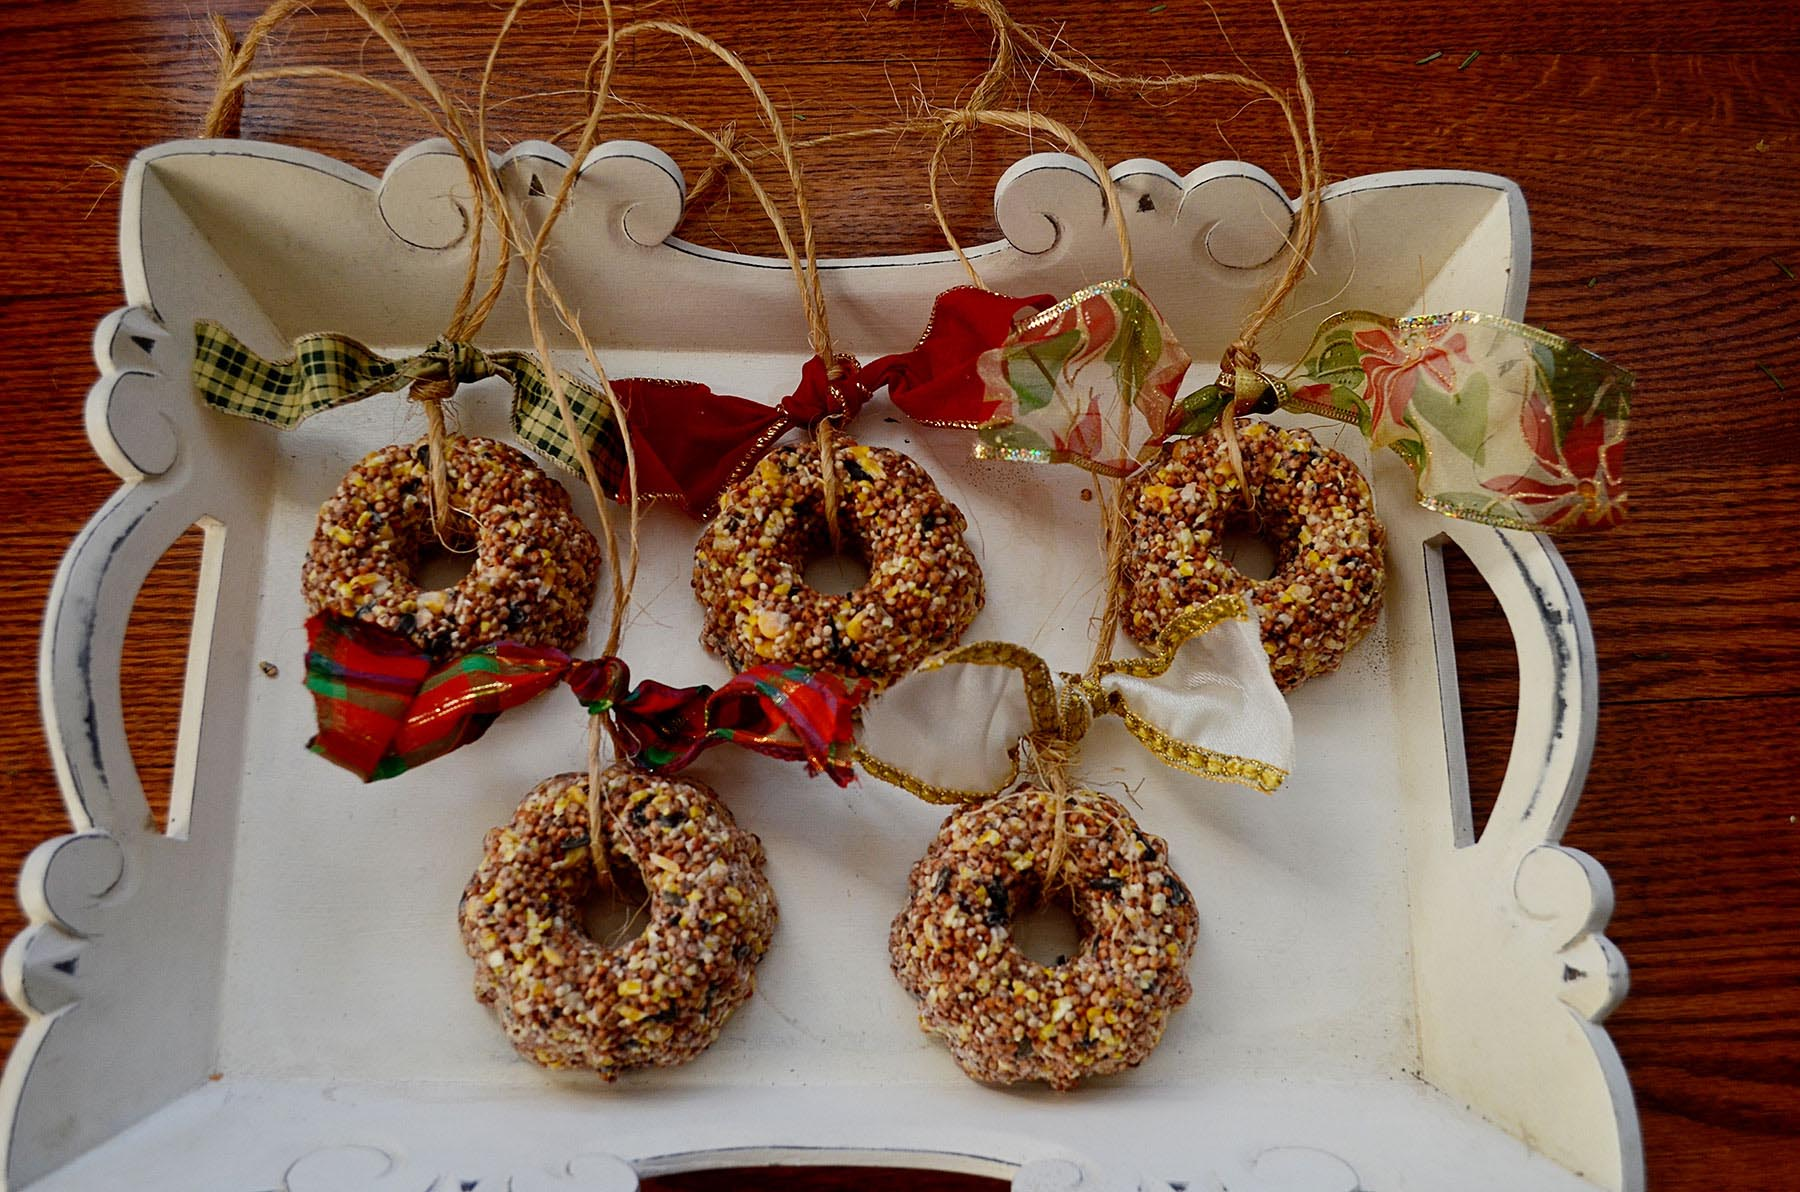 Homemade Bird Seed Ornaments